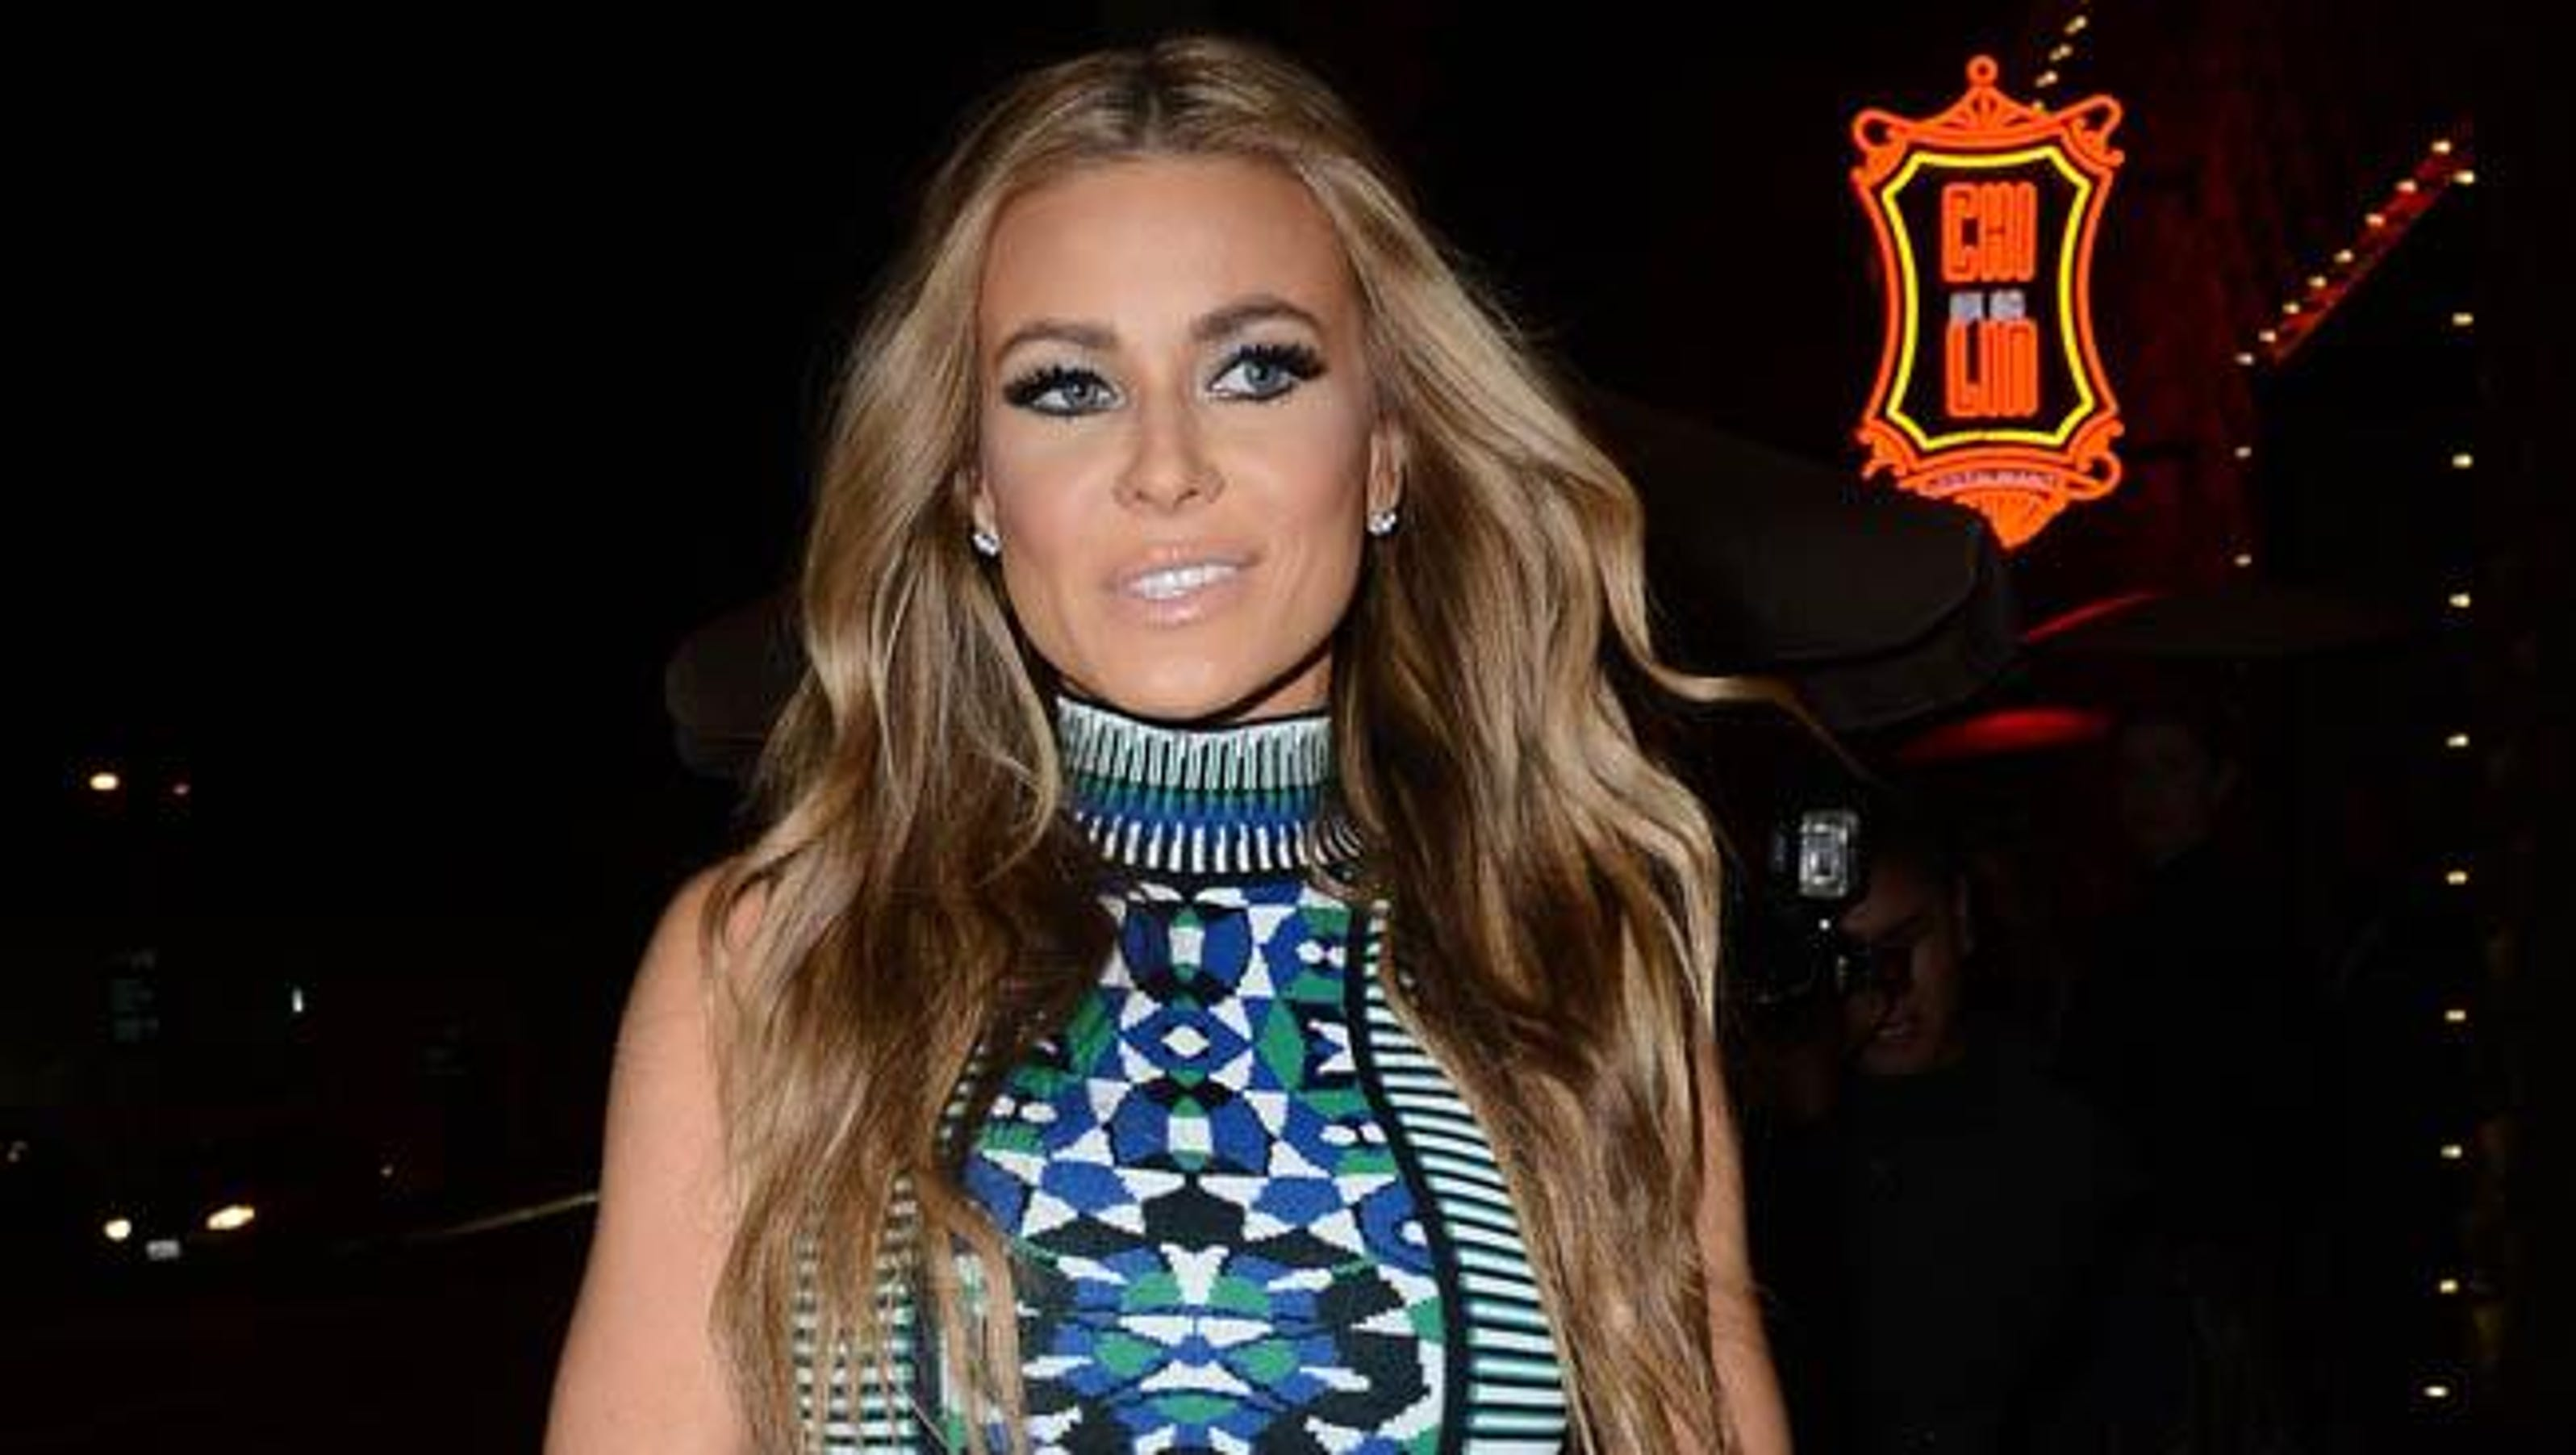 carmen electra dating list Entertainer carmen electra was a permanent fixture of the '90s and early '00s   and they've gone through hard times, so in order to get past that, they've had to   the pair worked together in the early '90s and even dated for a period of time.